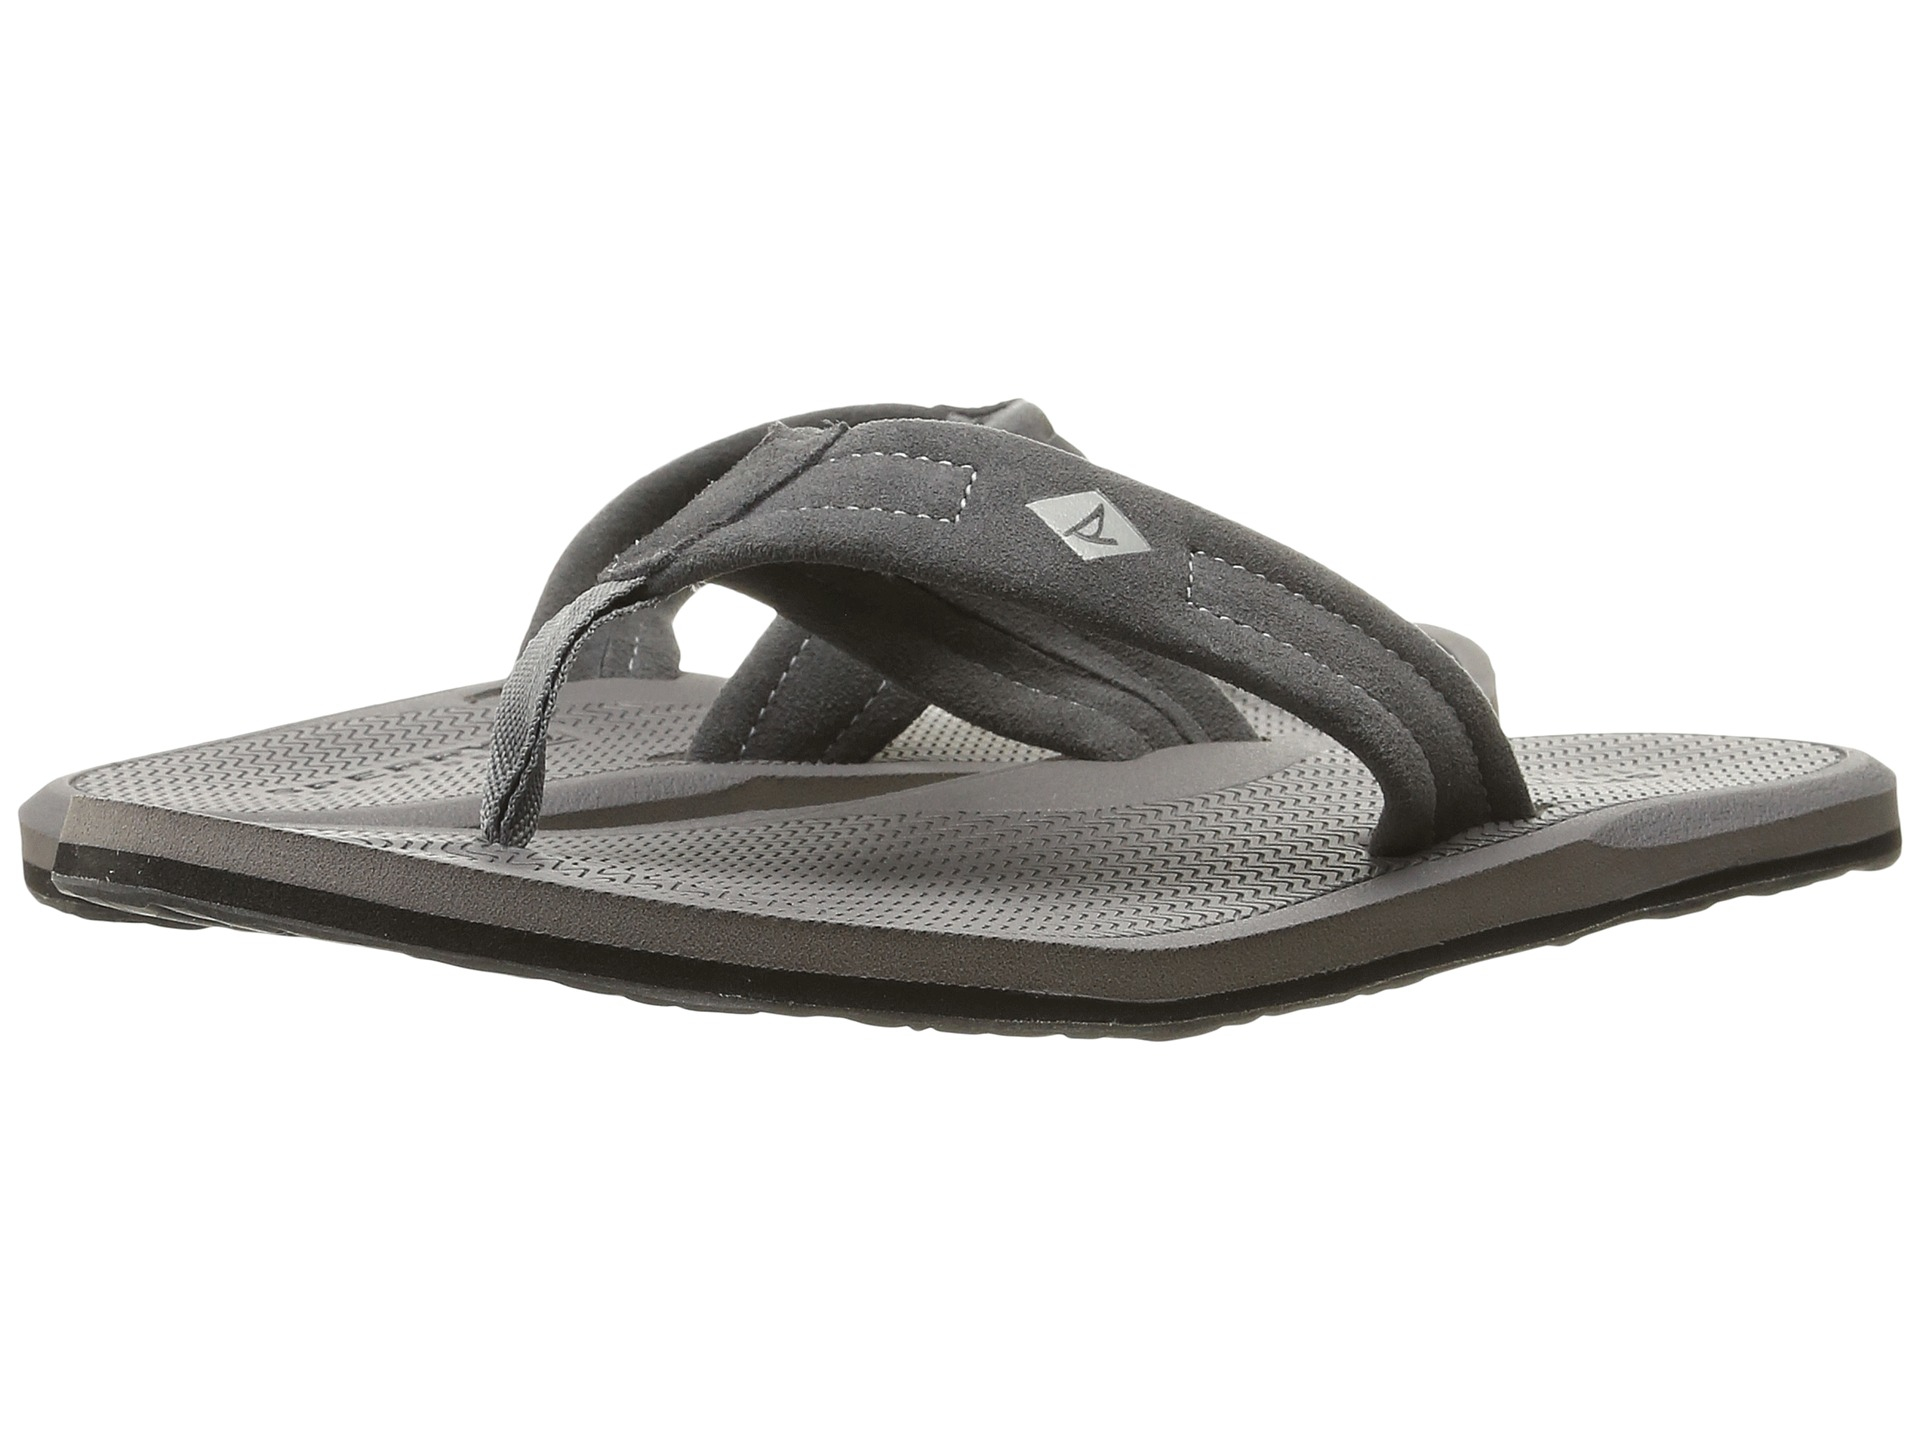 868329f11e47 Lyst - Sperry Top-Sider Sharktooth Thong in Black for Men